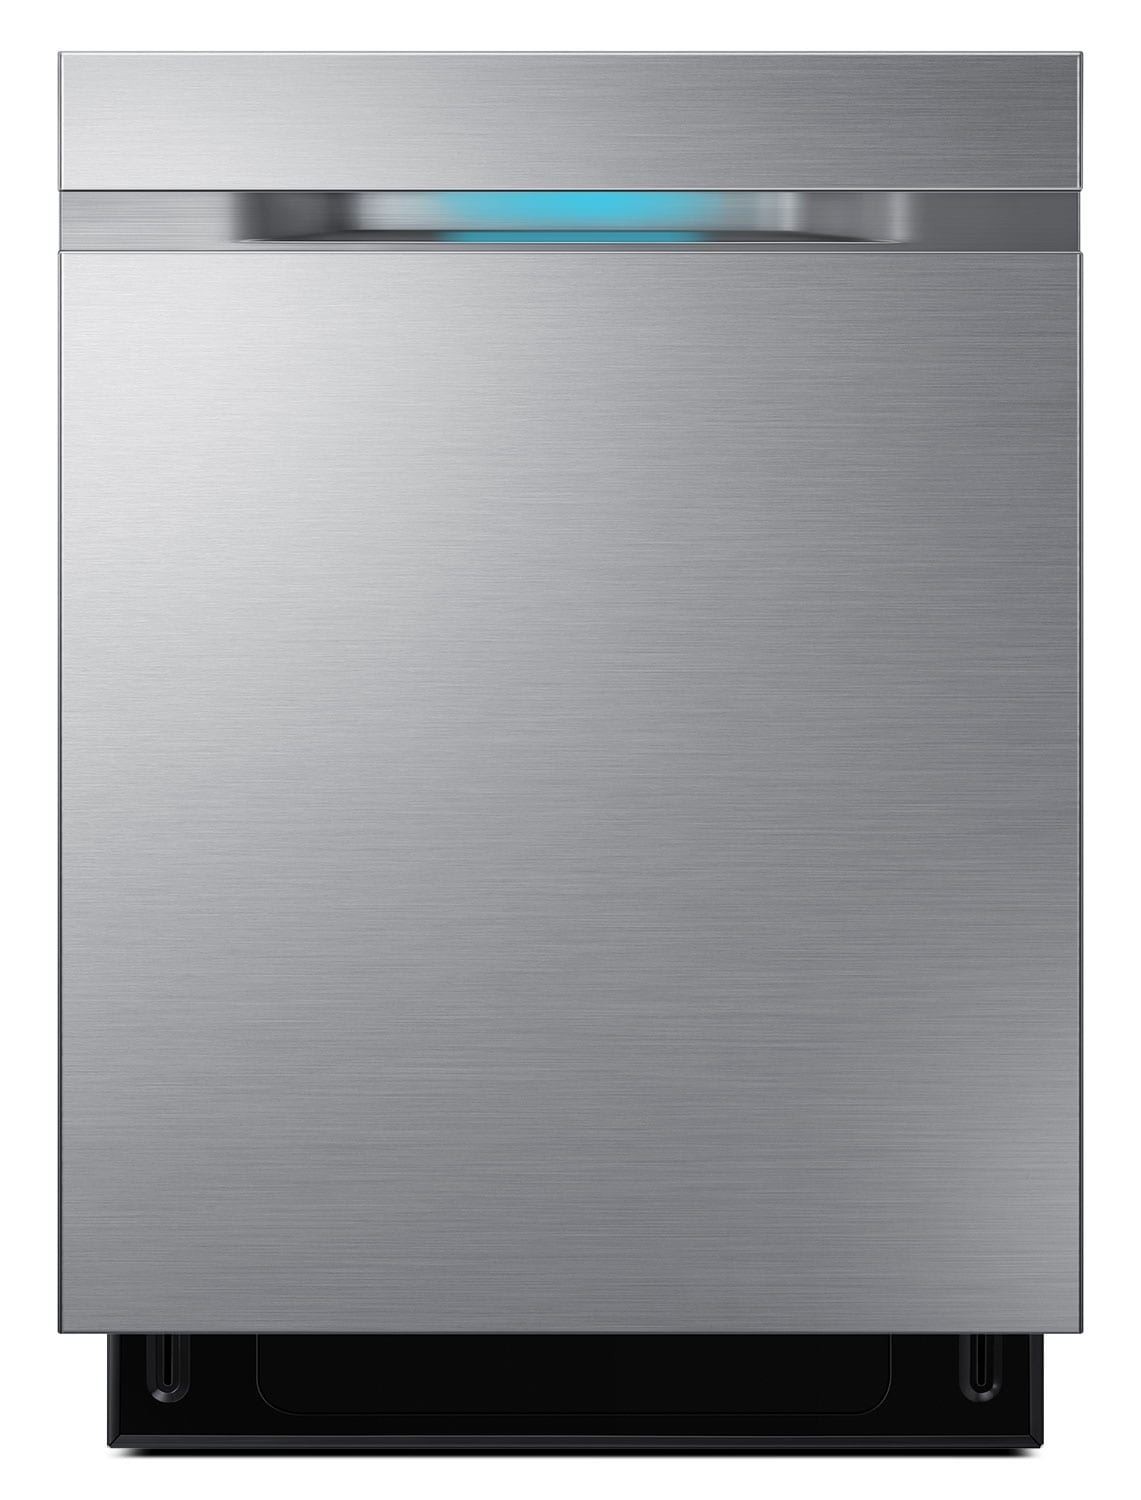 Clean-Up - Samsung WaterWall™ Built-In Dishwasher - Stainless Steel